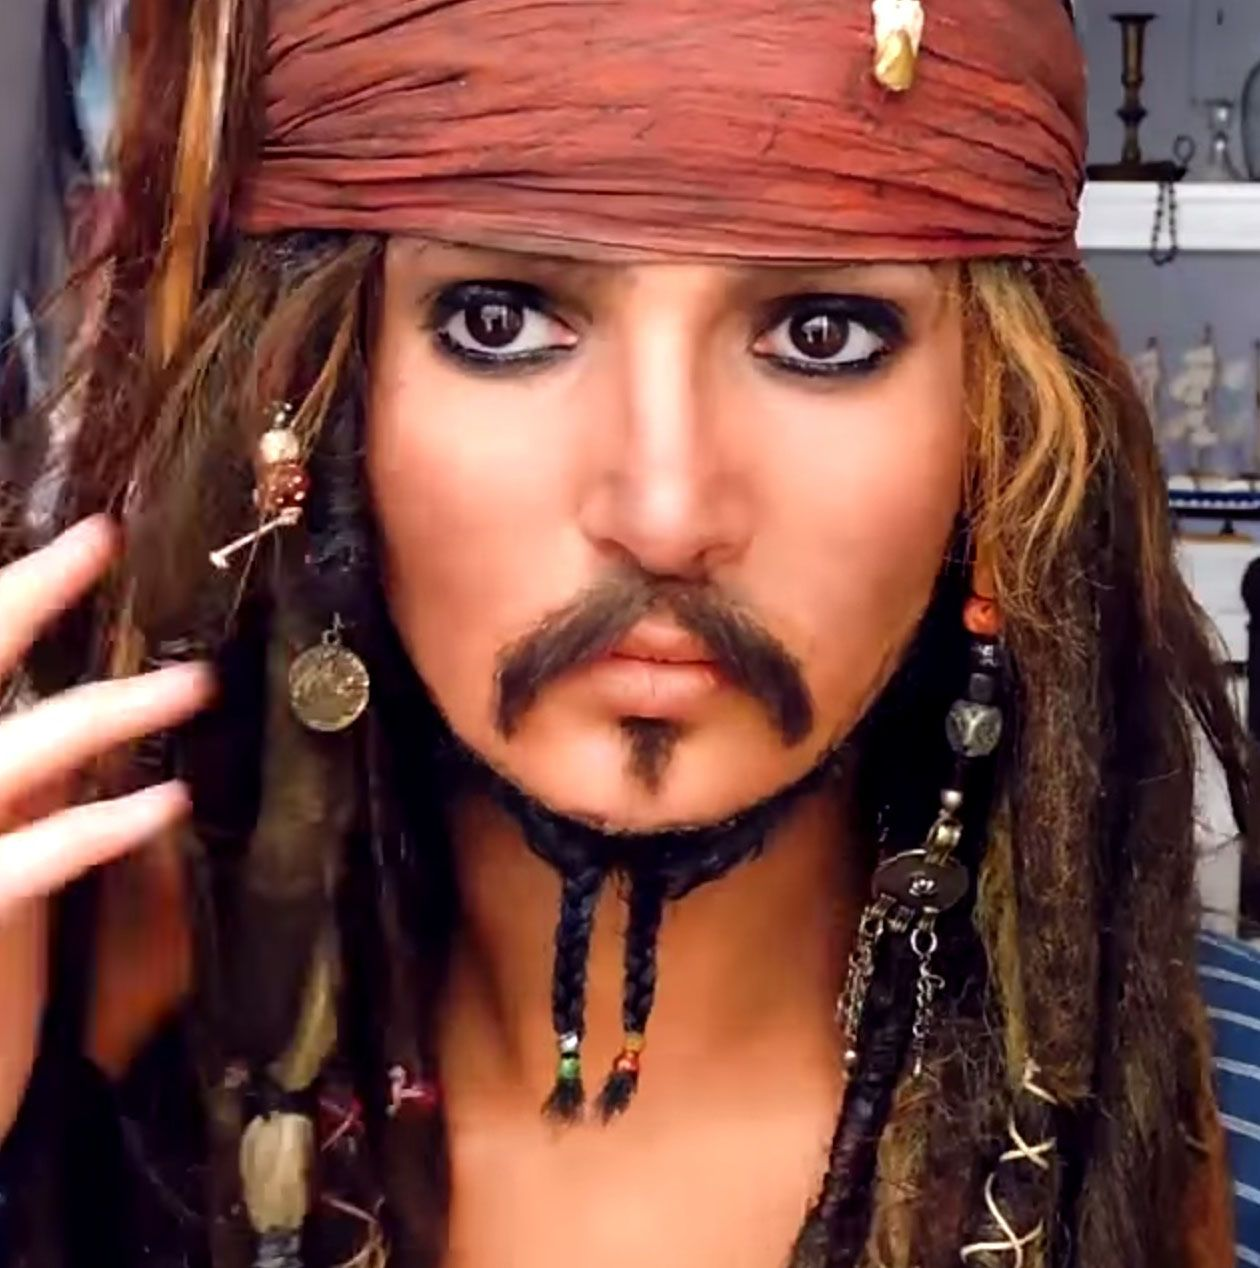 Jack Sparrow Halloween Makeup